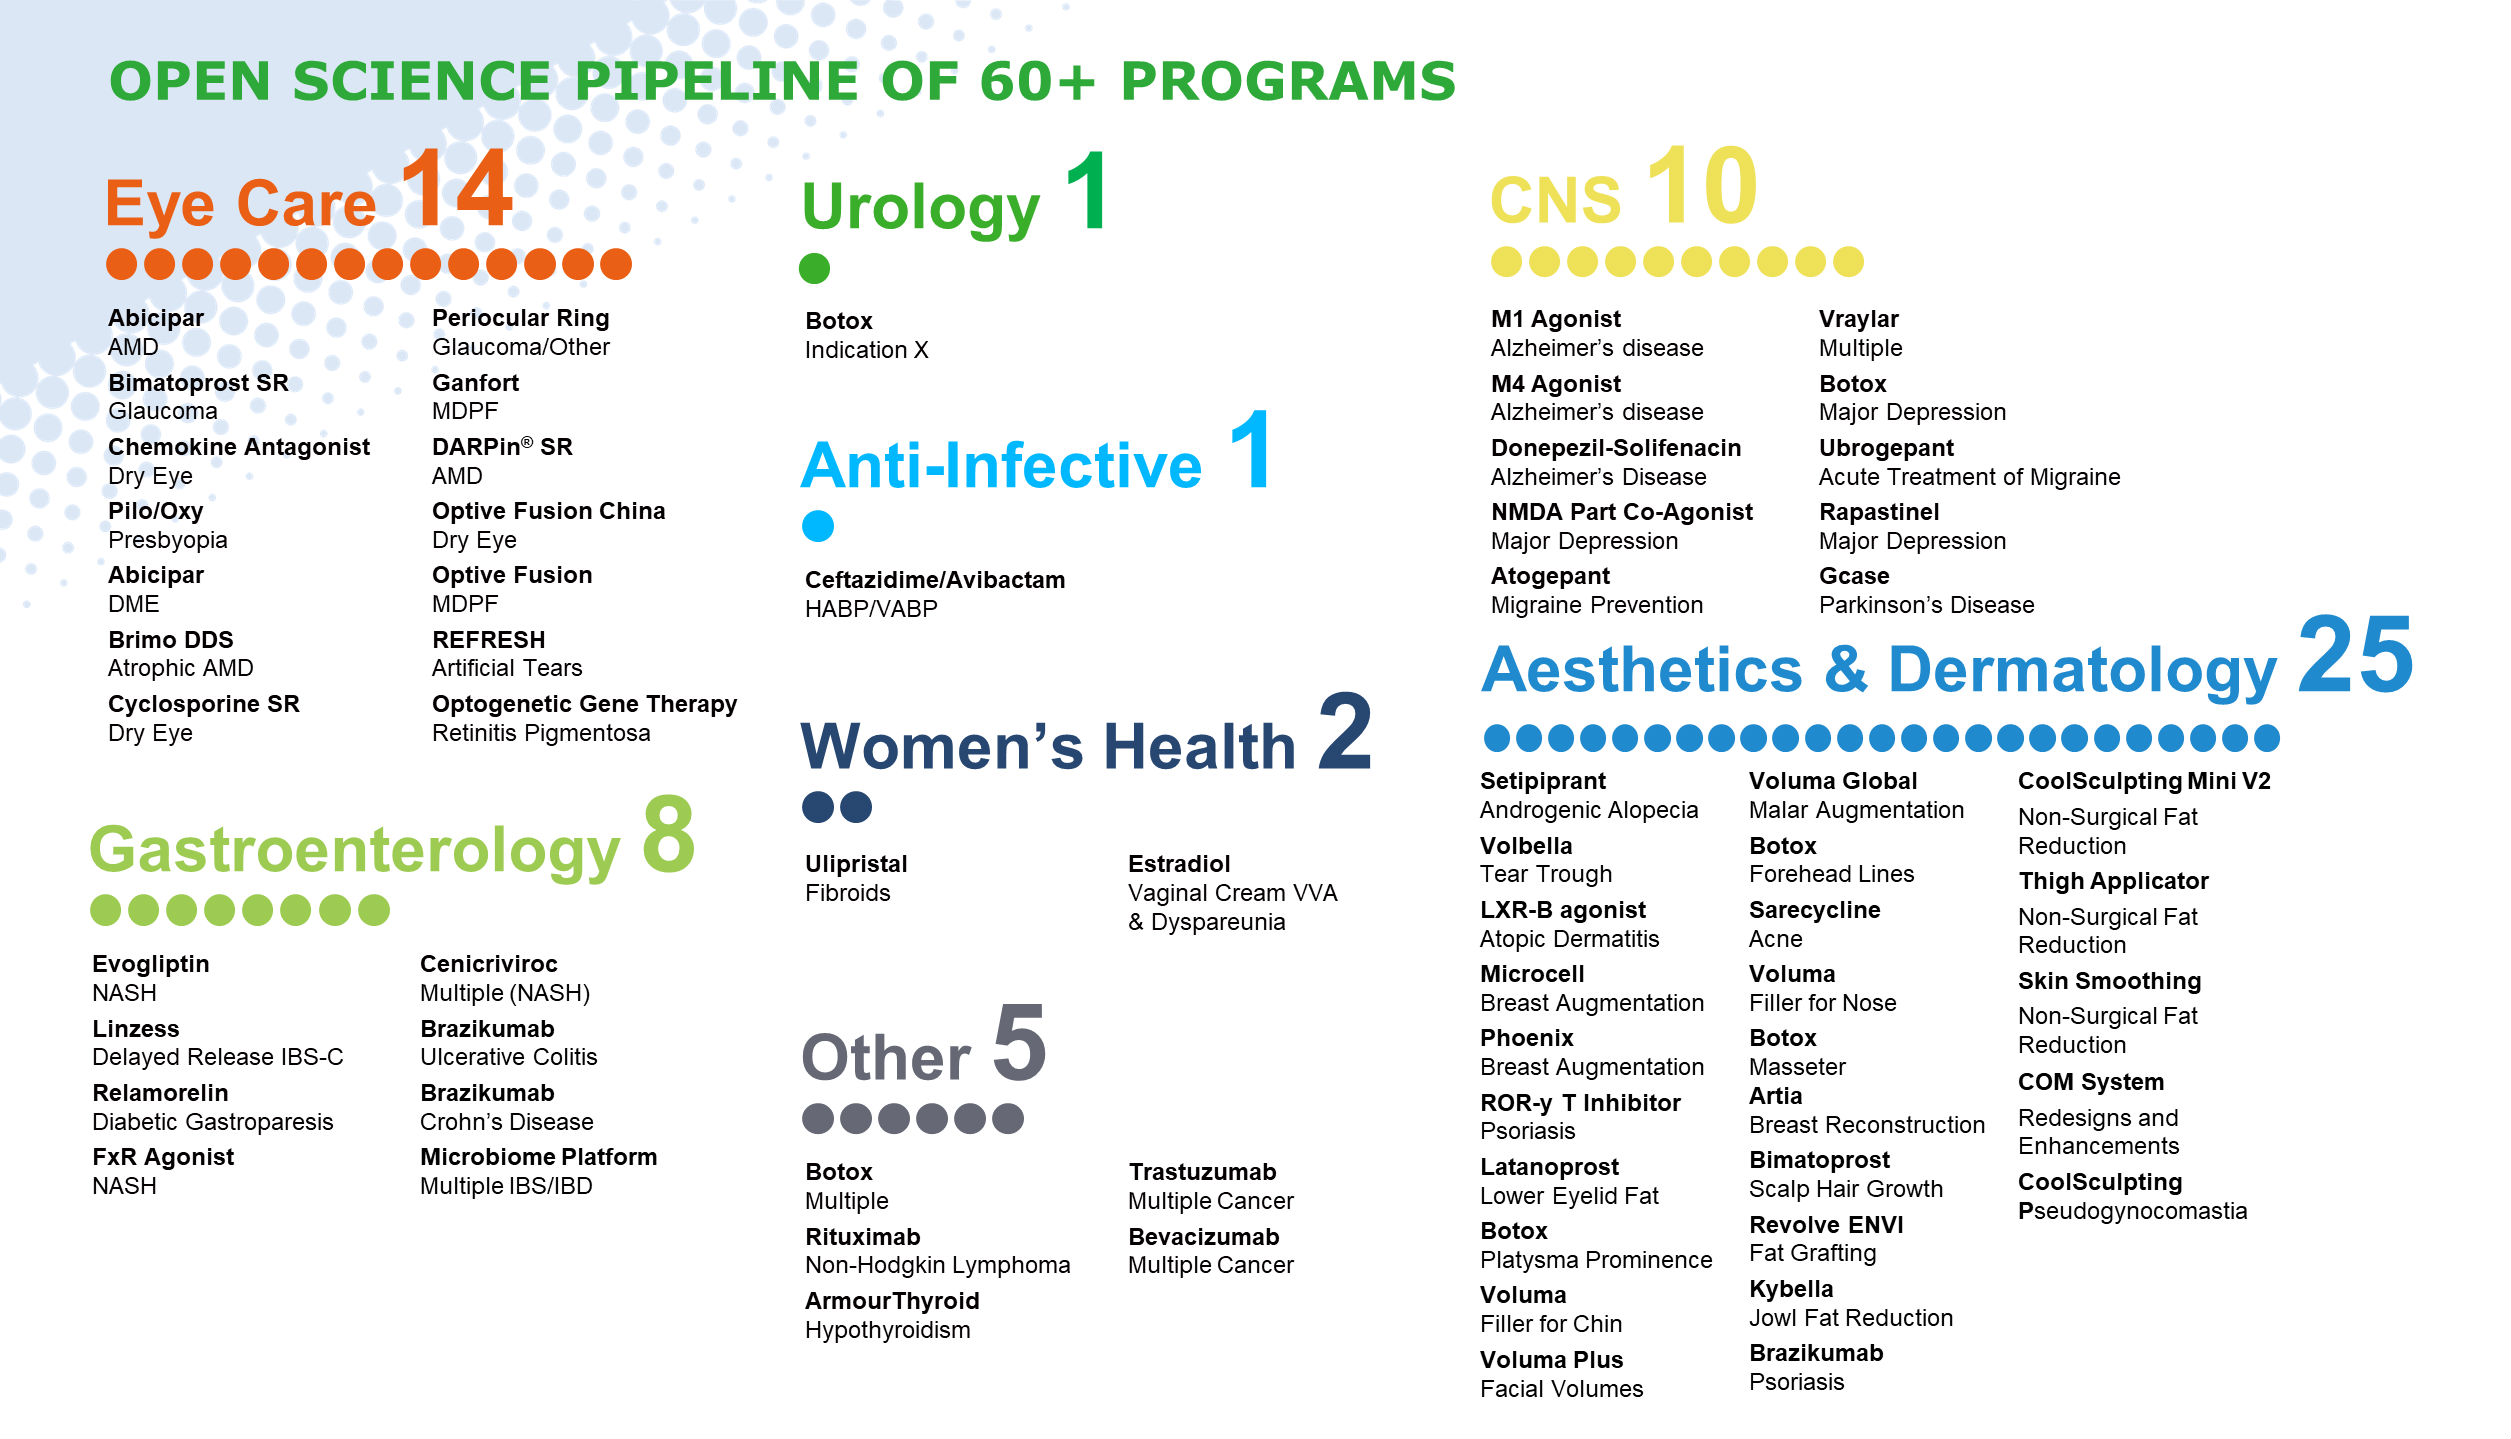 Allergan Pipeline